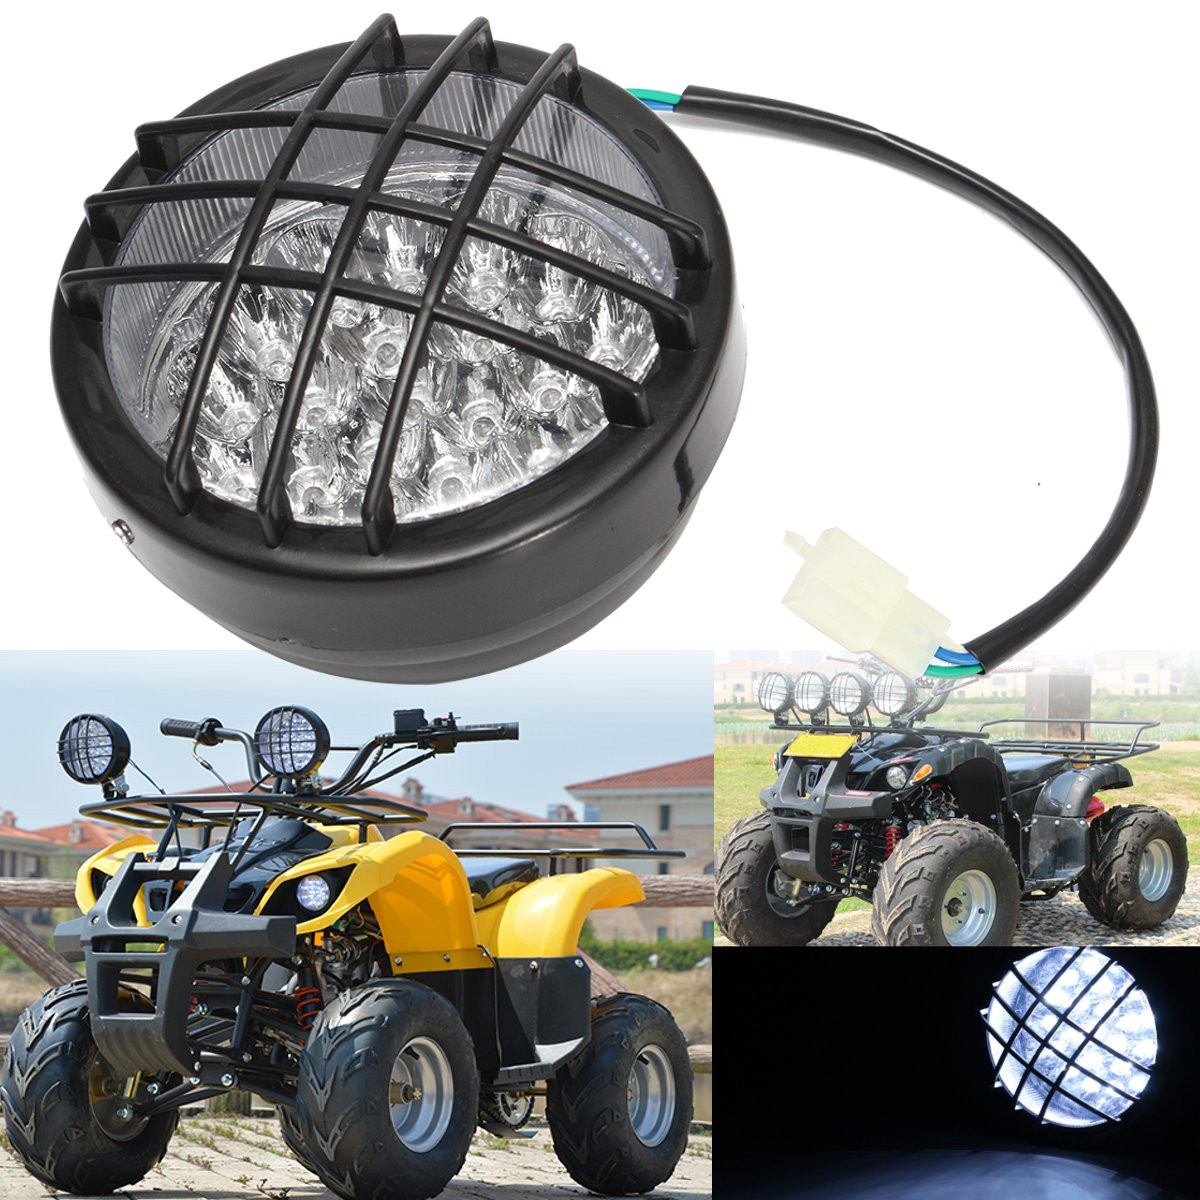 12V Motorcycle Front LED Headlight Lamp For ATV Quad 4 Wheeler Go Kart Roketa SunL Taotao